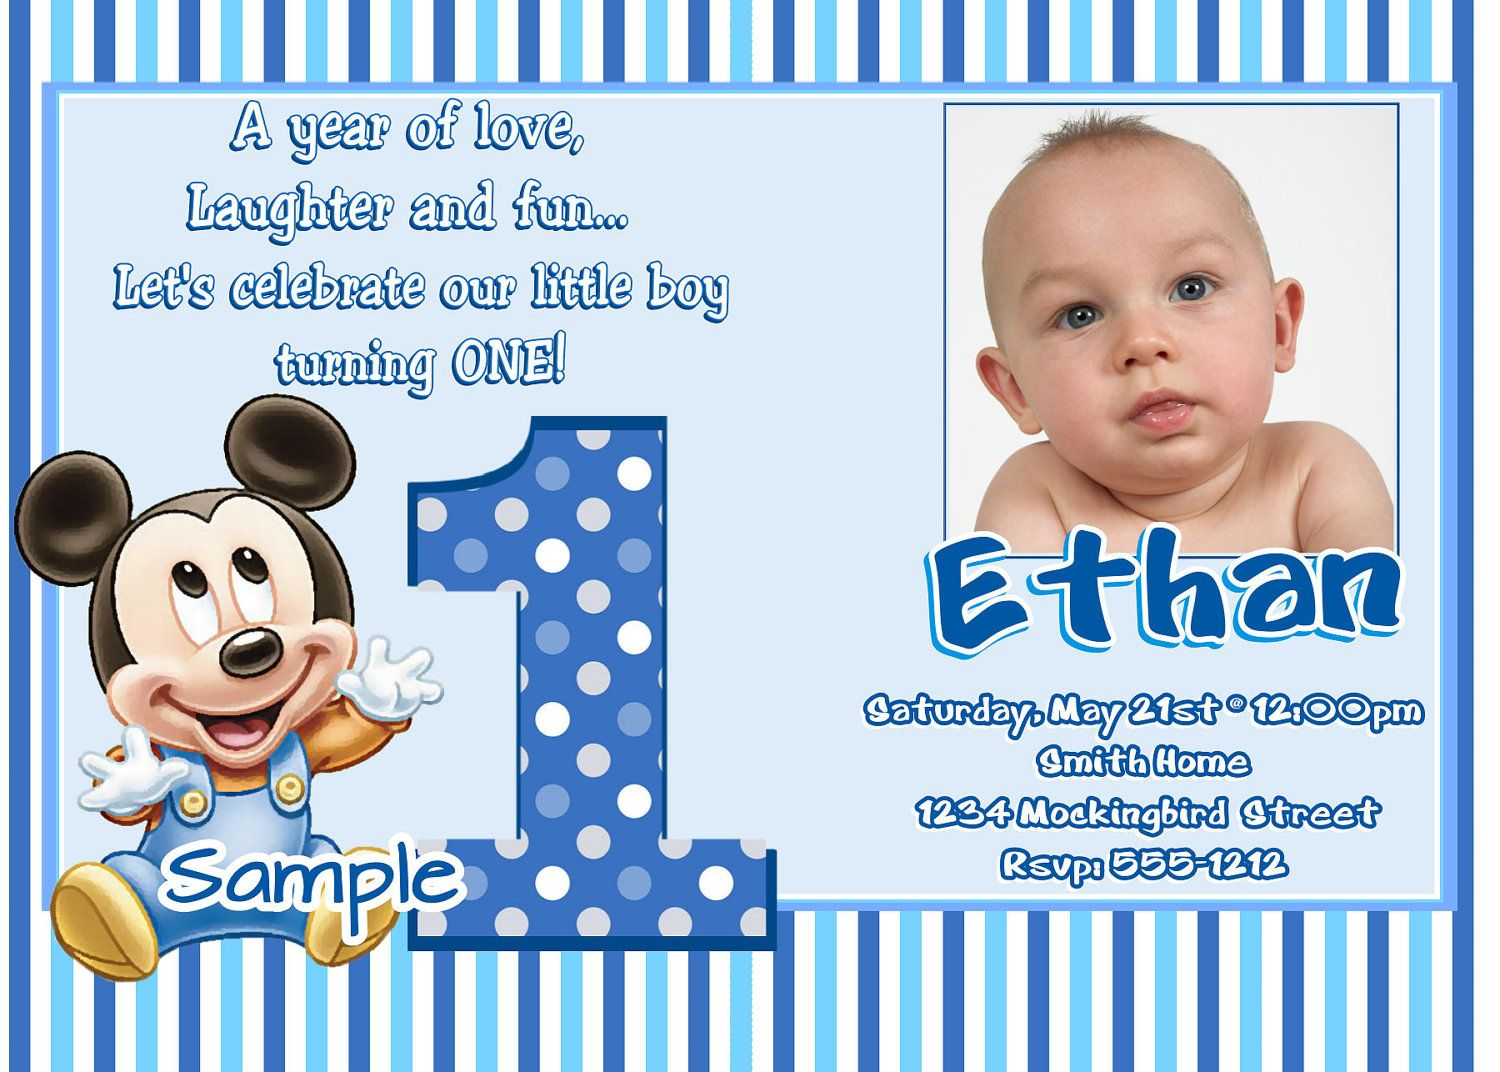 Free 1st Birthday Invitation Templates Birthday Invitation Card Template First Birthday Invitation Cards 1st Birthday Invitations